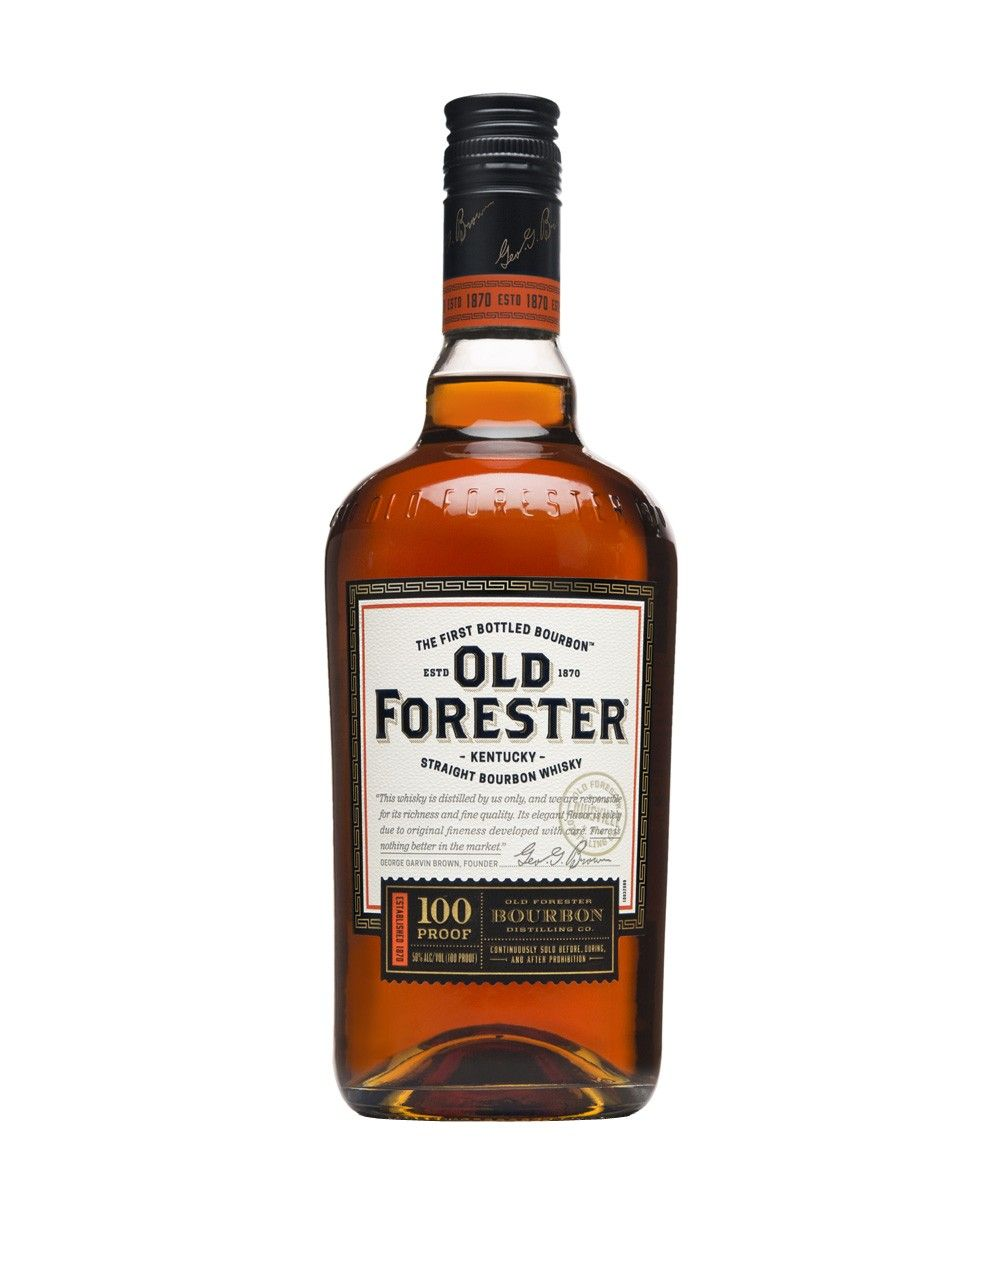 OLD FORESTER  AROMA  Buttered toast with cherry jam, pecan pie, and popcorn  TASTE  Roasted pralines with. More cherry, baking spice, and a dash of chocolate  FINISH  Smooth and even with spice on the back palate